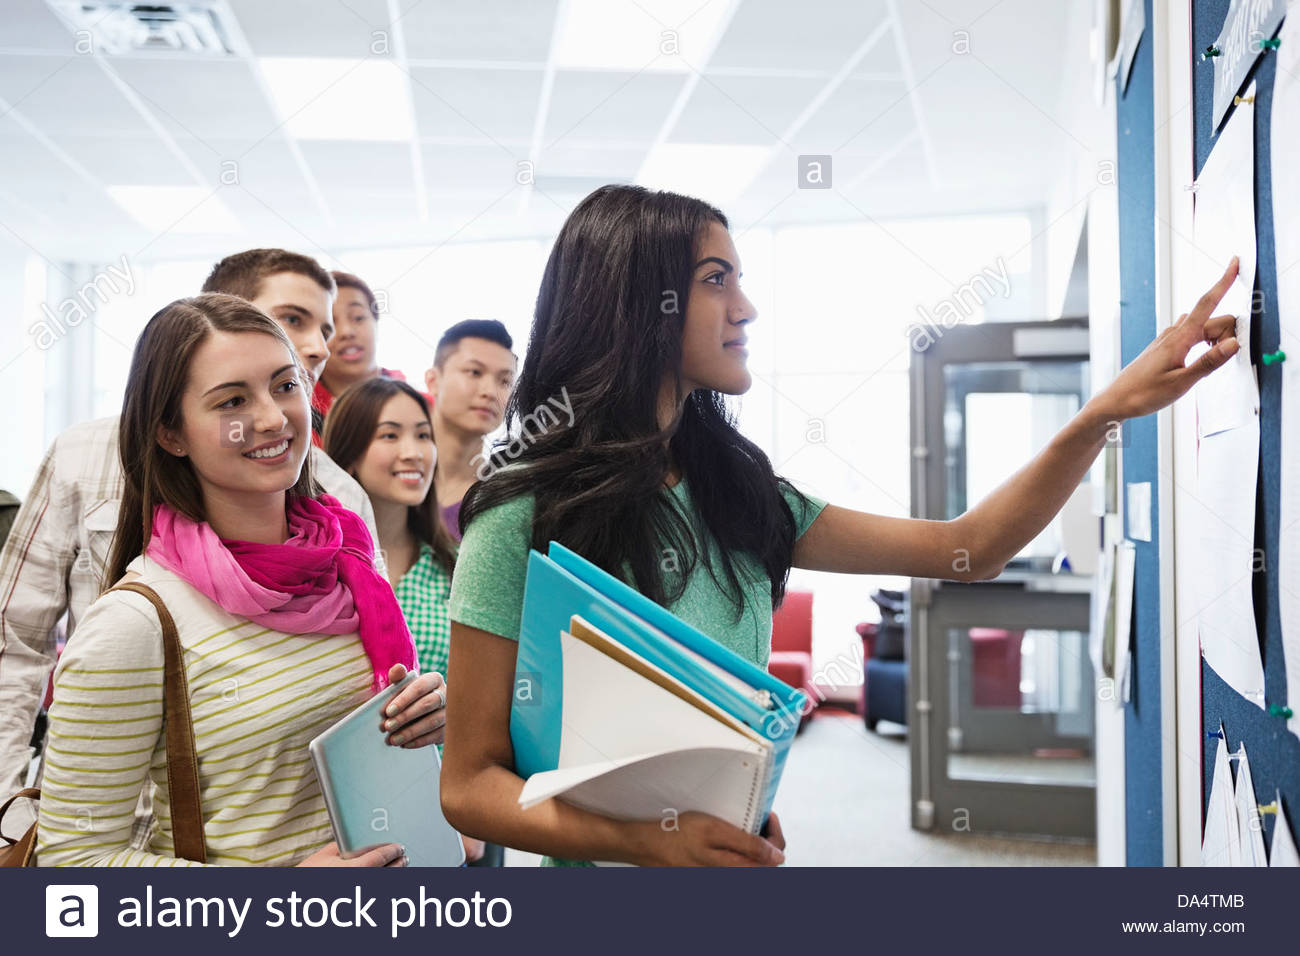 Group of college students checking grade postings - Stock Image